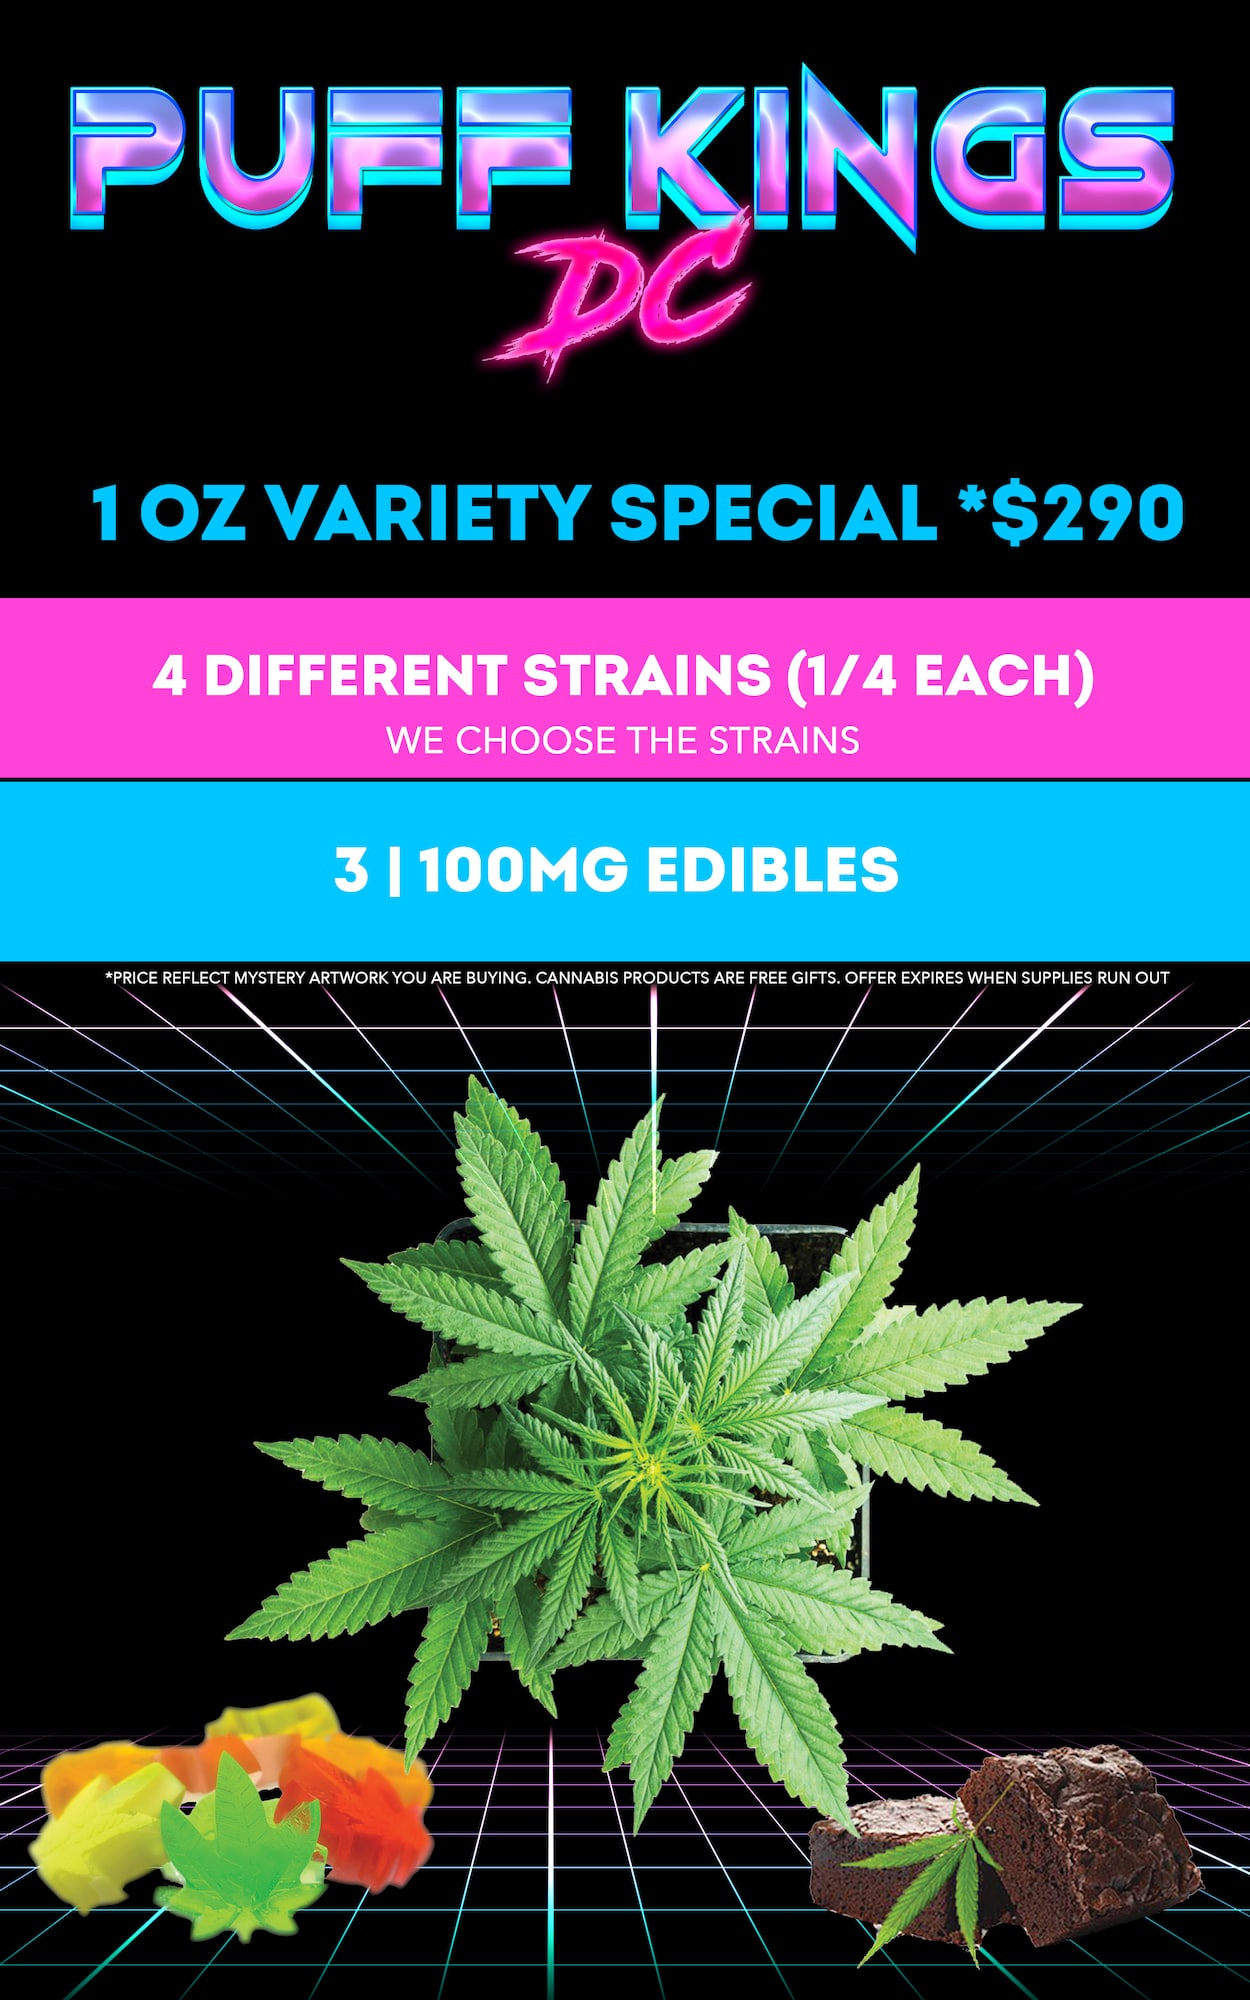 puff kings dc variety ounce special